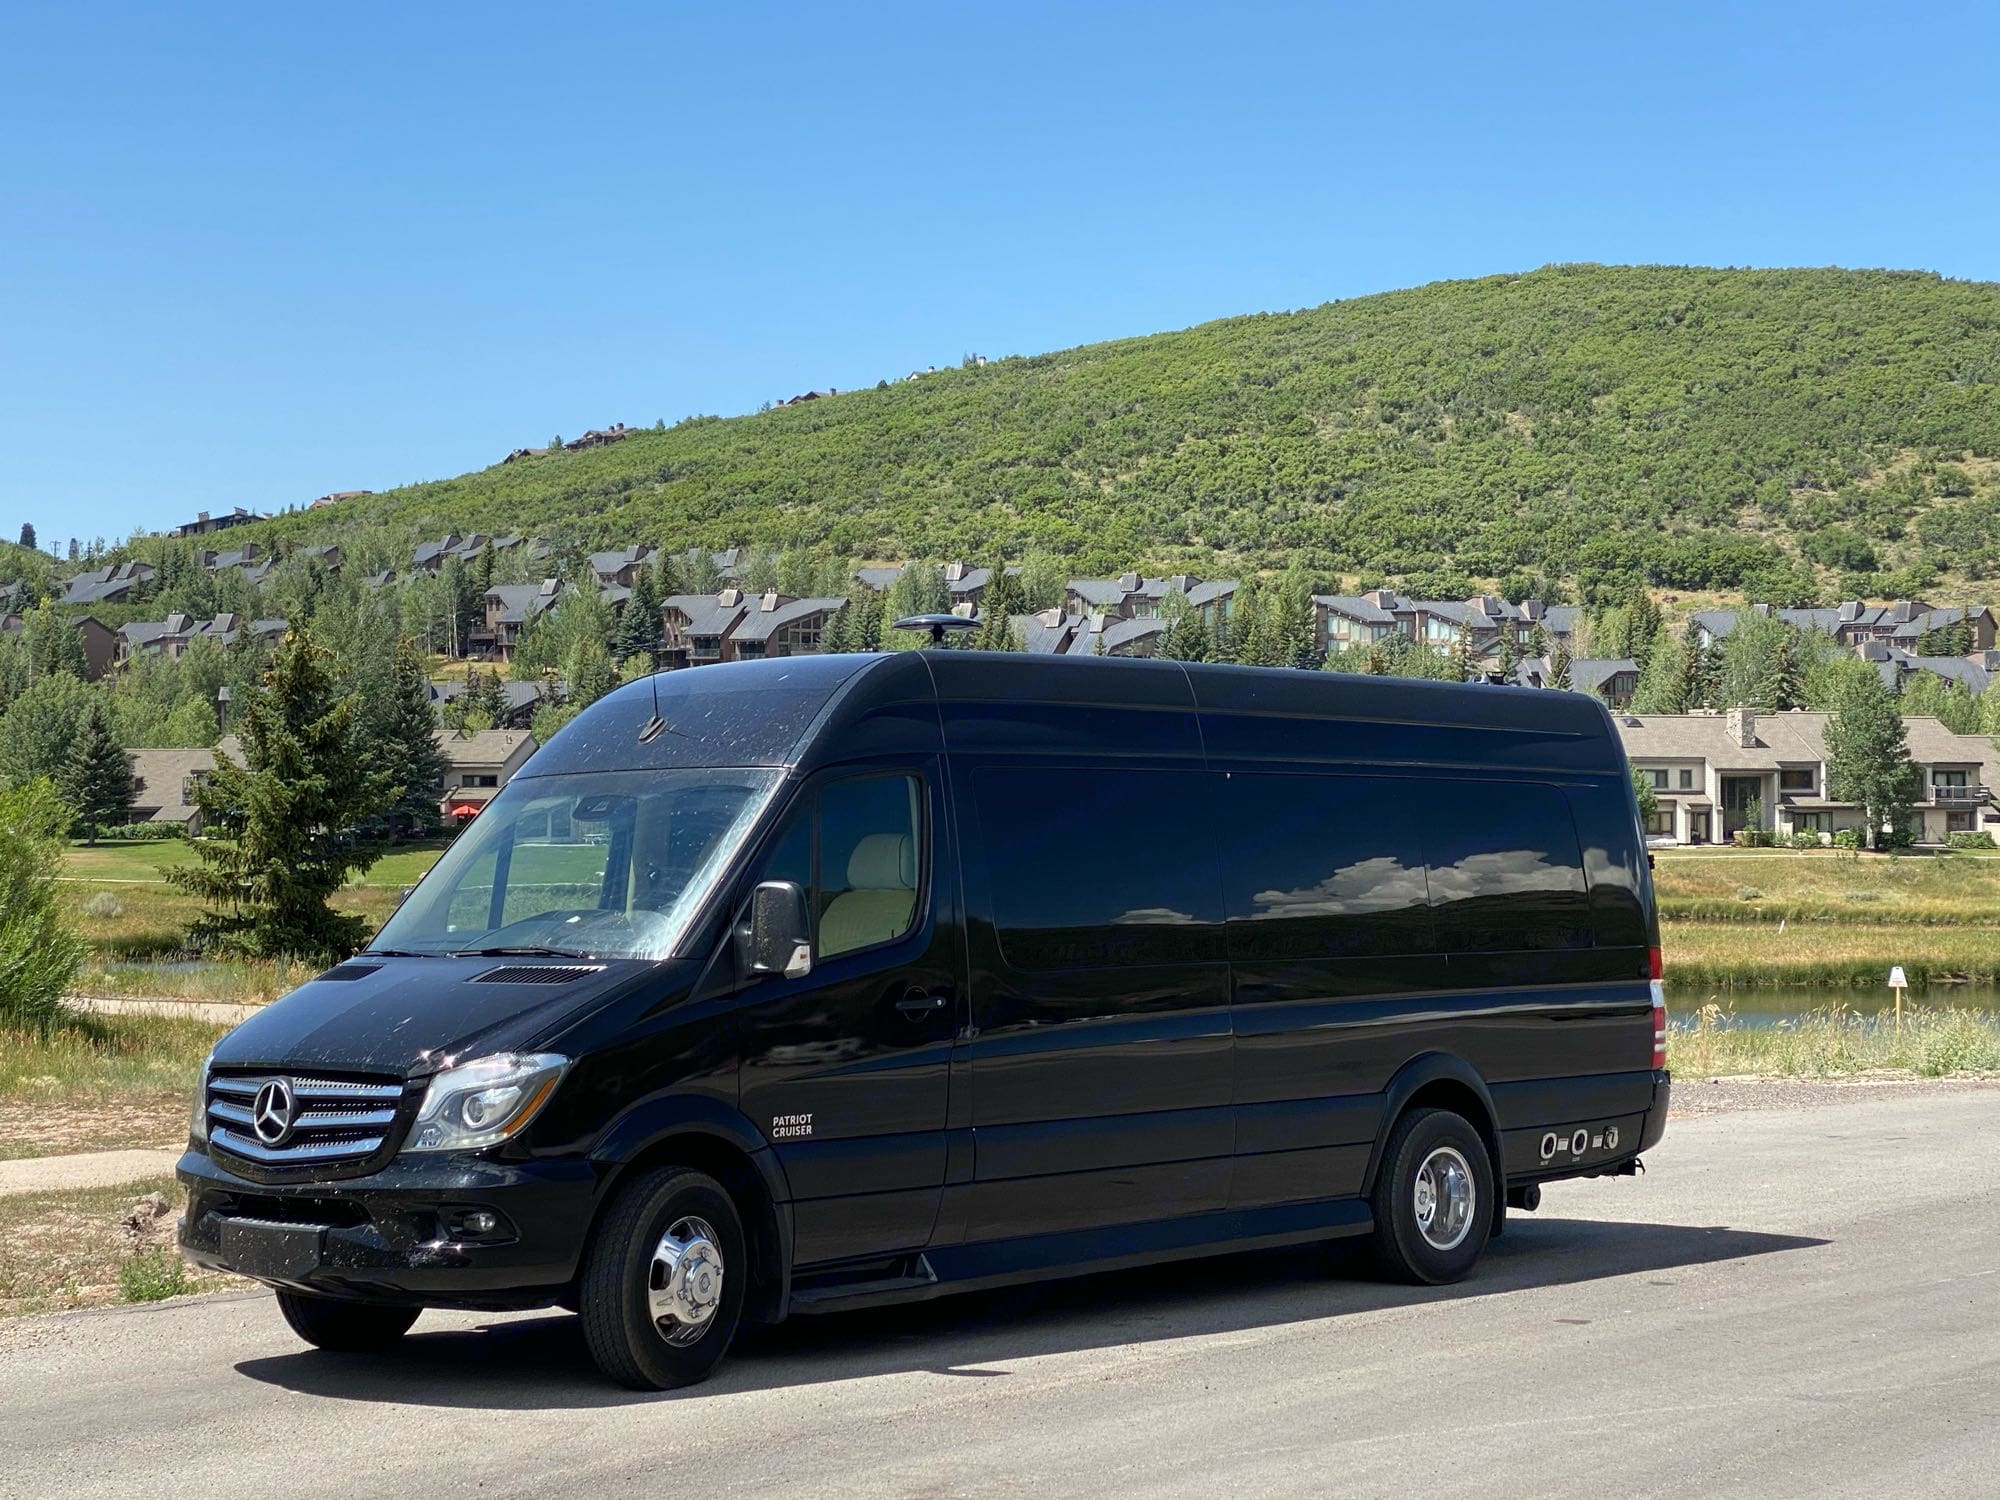 Spacious van is easy to drive while providing lots of extra room and comfort for all passengers. American Coach Patriot Cruiser 2019